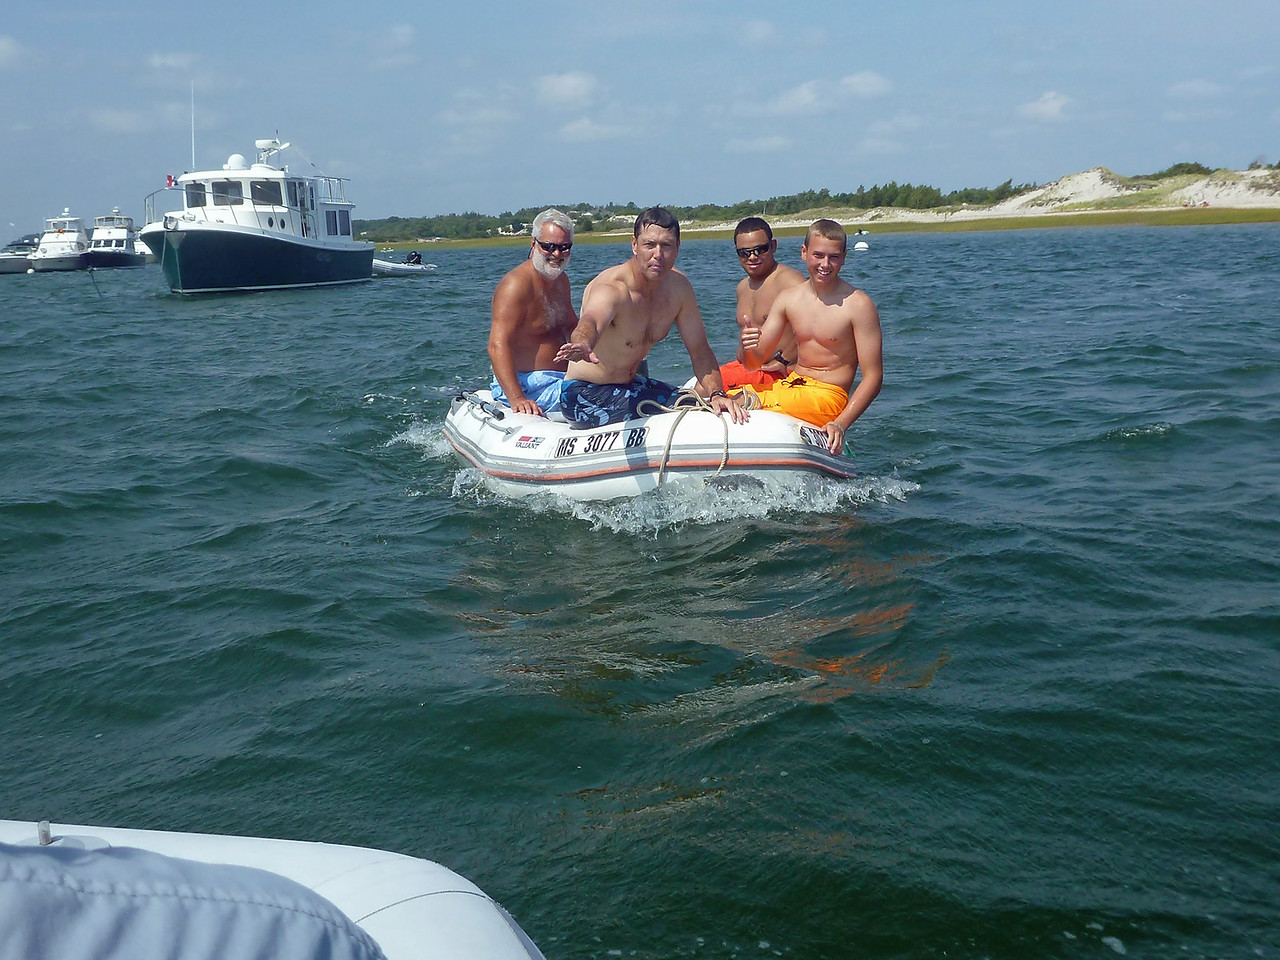 Why are 'Em and Robby on a stranger's dinghy and all wet?